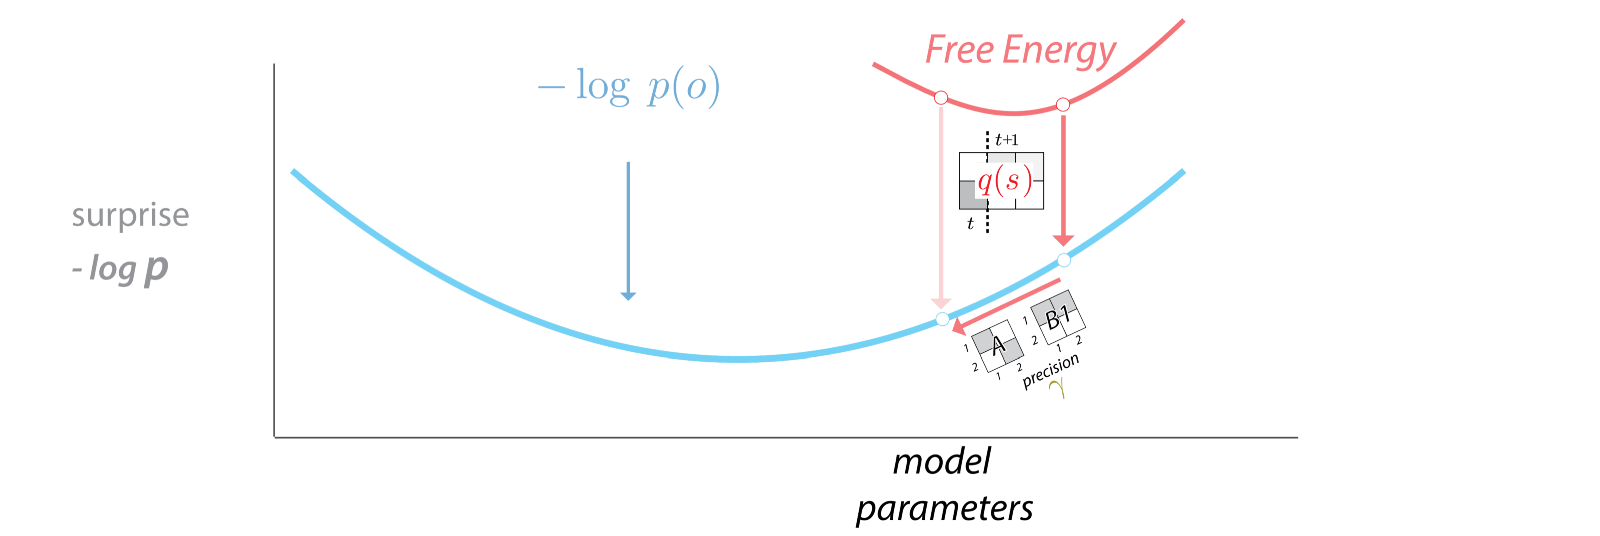 Tutorial On Active Inference Oleg Solopchuk Medium Free Energy Diagram Surely There Are Some Limitations Too For Example We Assume That Approximate Posterior Q T Pi Is Independent At Each Time Point Which Not True